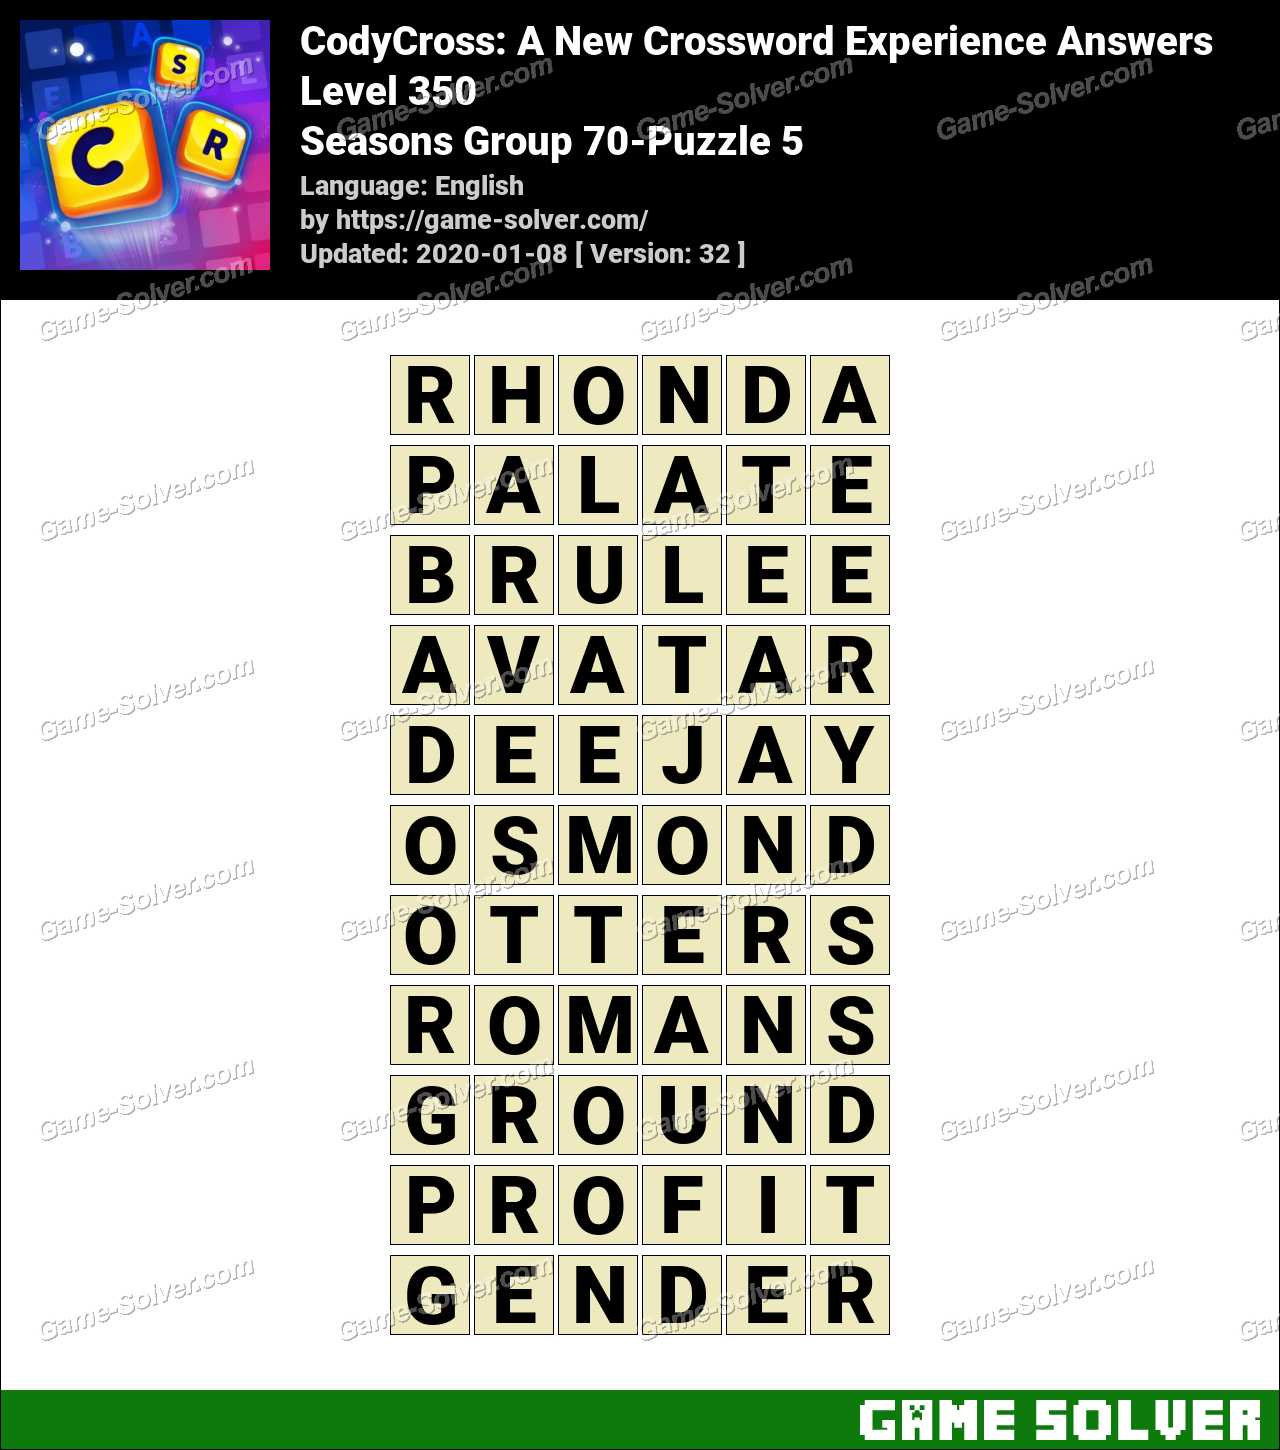 CodyCross Seasons Group 70-Puzzle 5 Answers